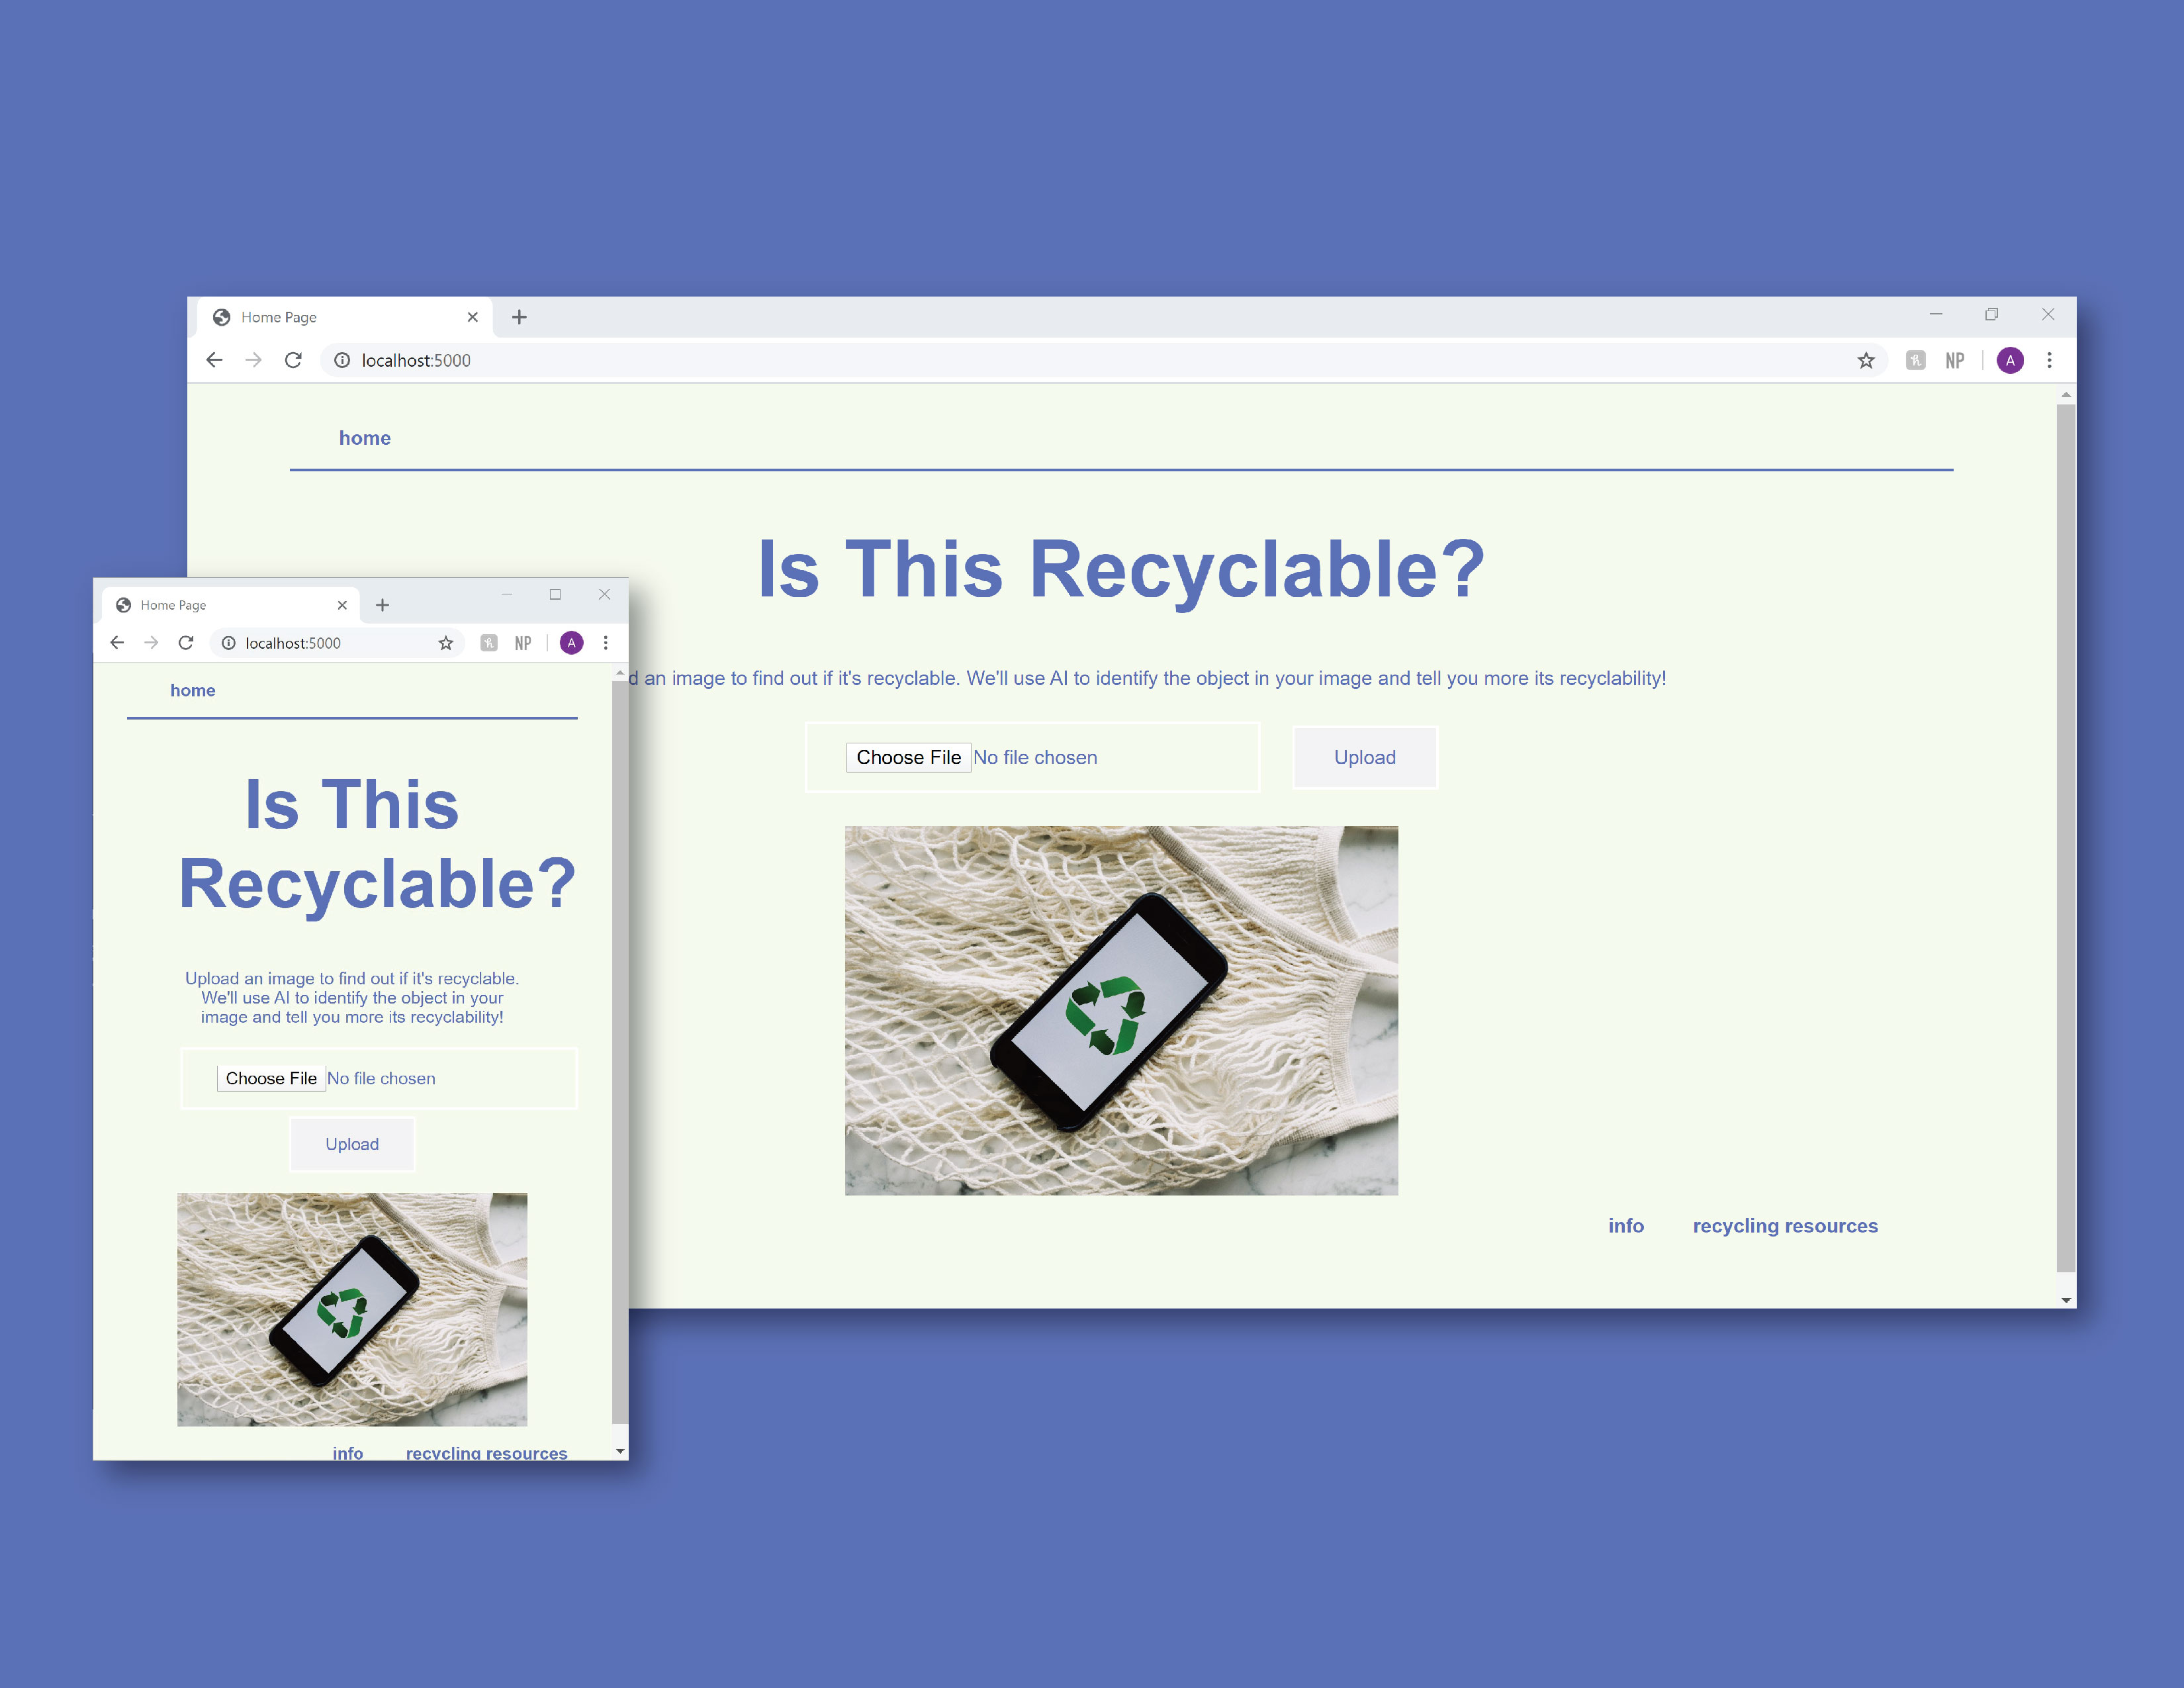 image showing screenshots of the Is This Recyclable? web app on a medium blue background. The screenshots are in two sizes, a smaller, vertical one on top of a horizontal one.